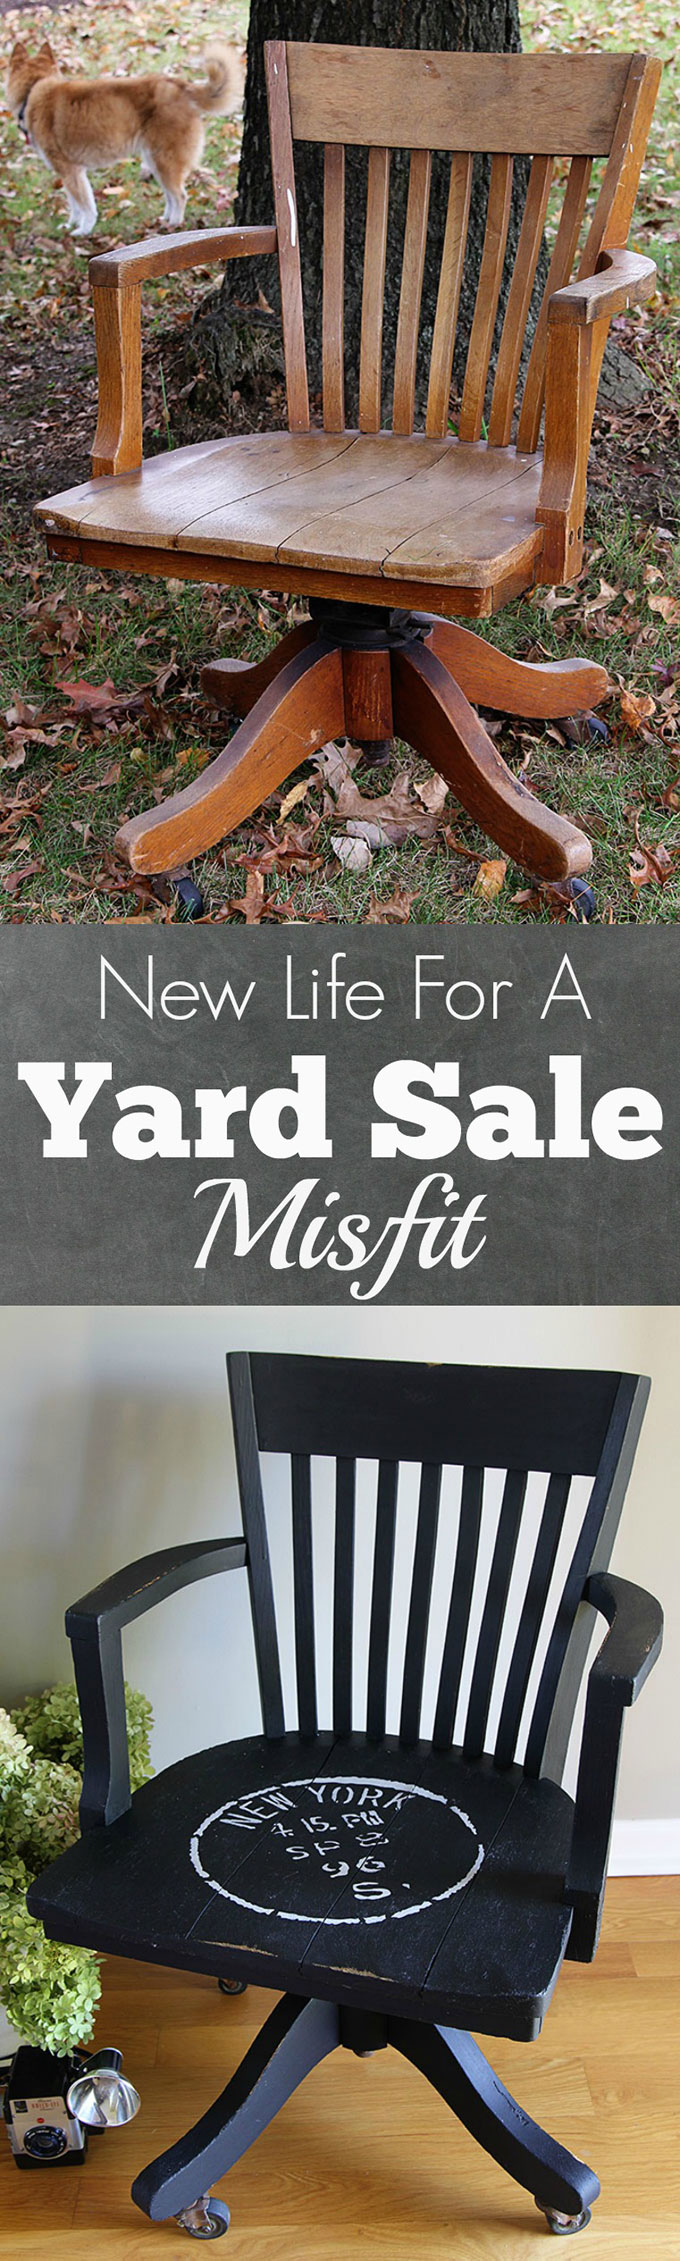 Breathing new life into an oak banker's chair with chalk paint and a stencil. A simple DIY project that saved this tired yard sale find from an early death.